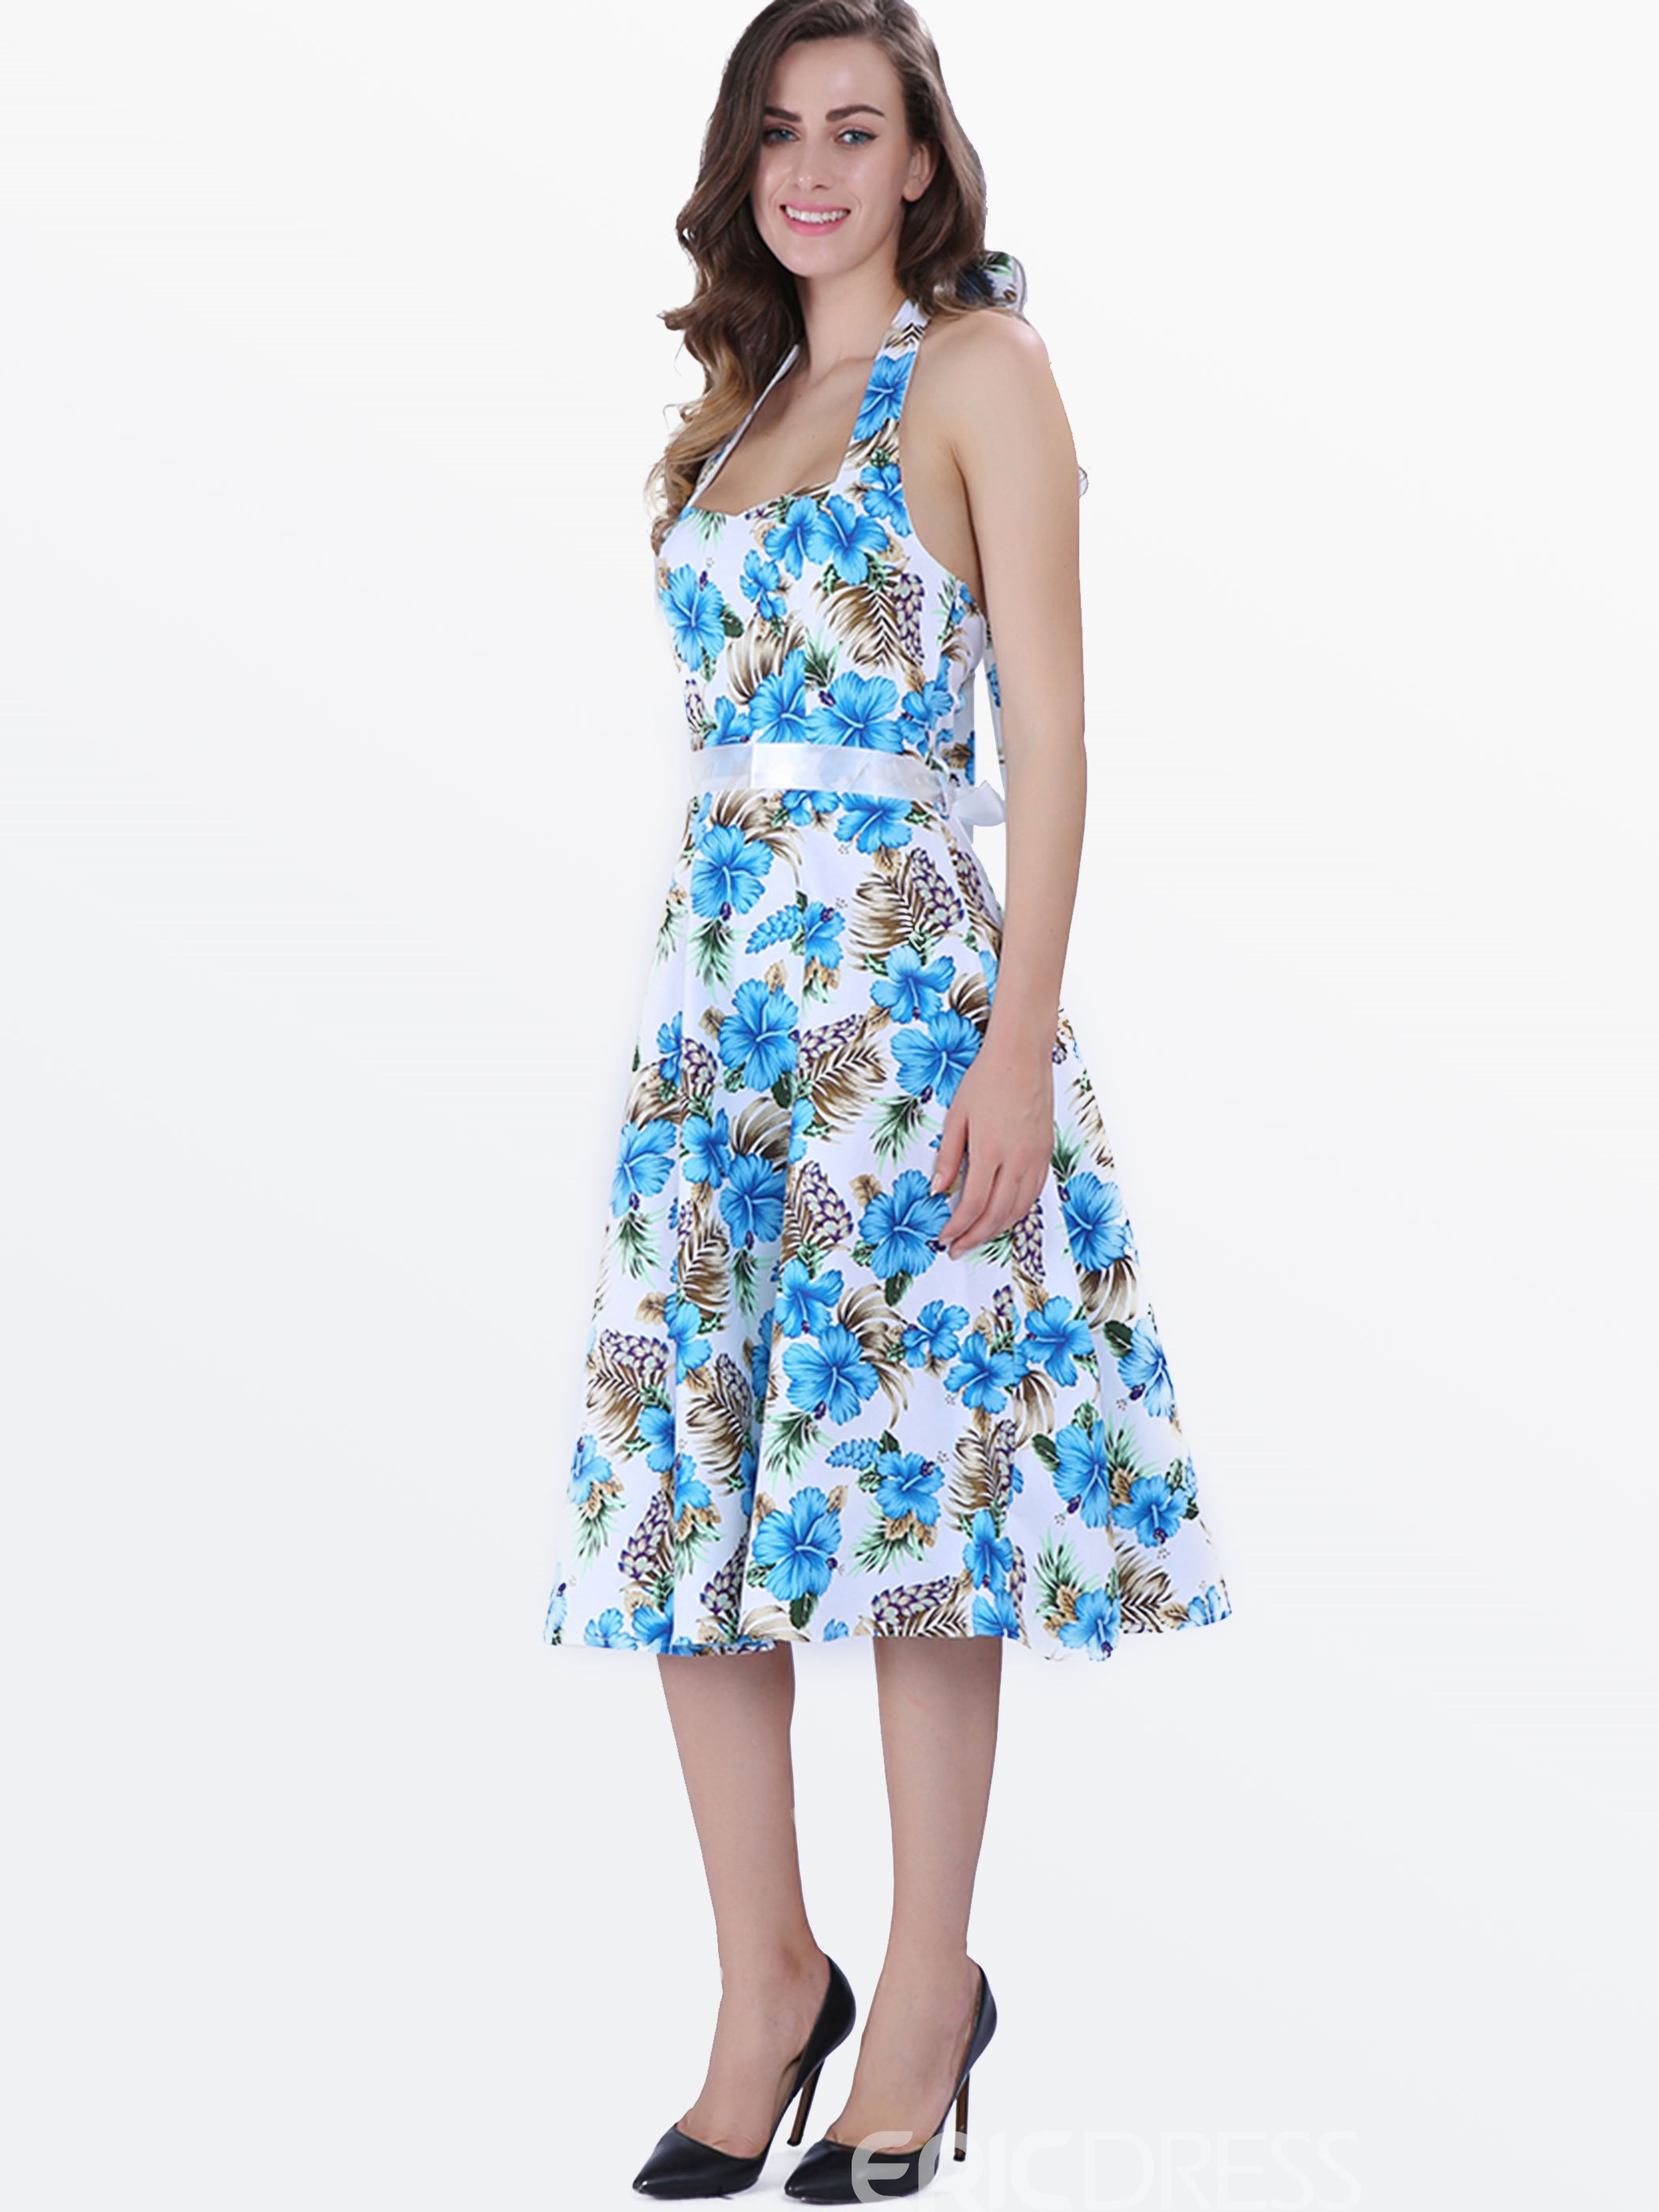 Ericdress Rockabilly Style Blue Floral Casual Dress 11404756 ...